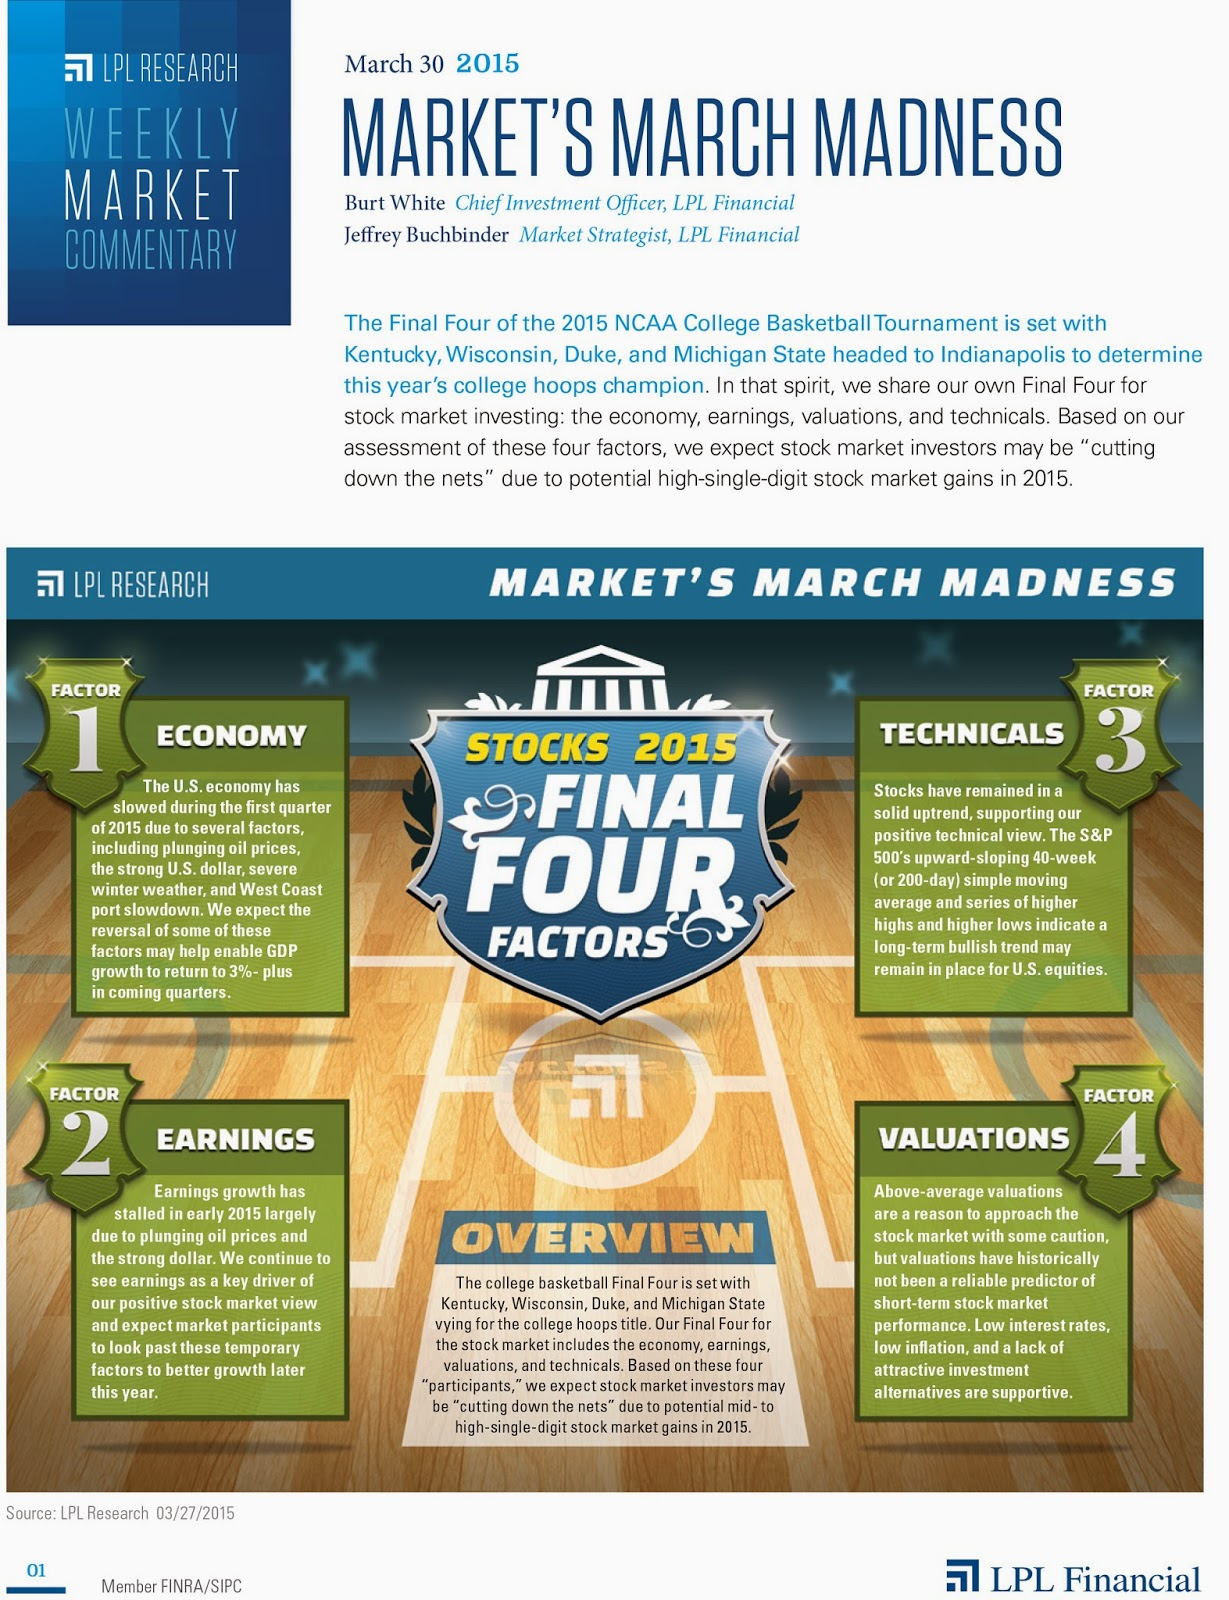 March 30, 2015- LPL Financial Weekly Market Commentary from Legacy Wealth Planning